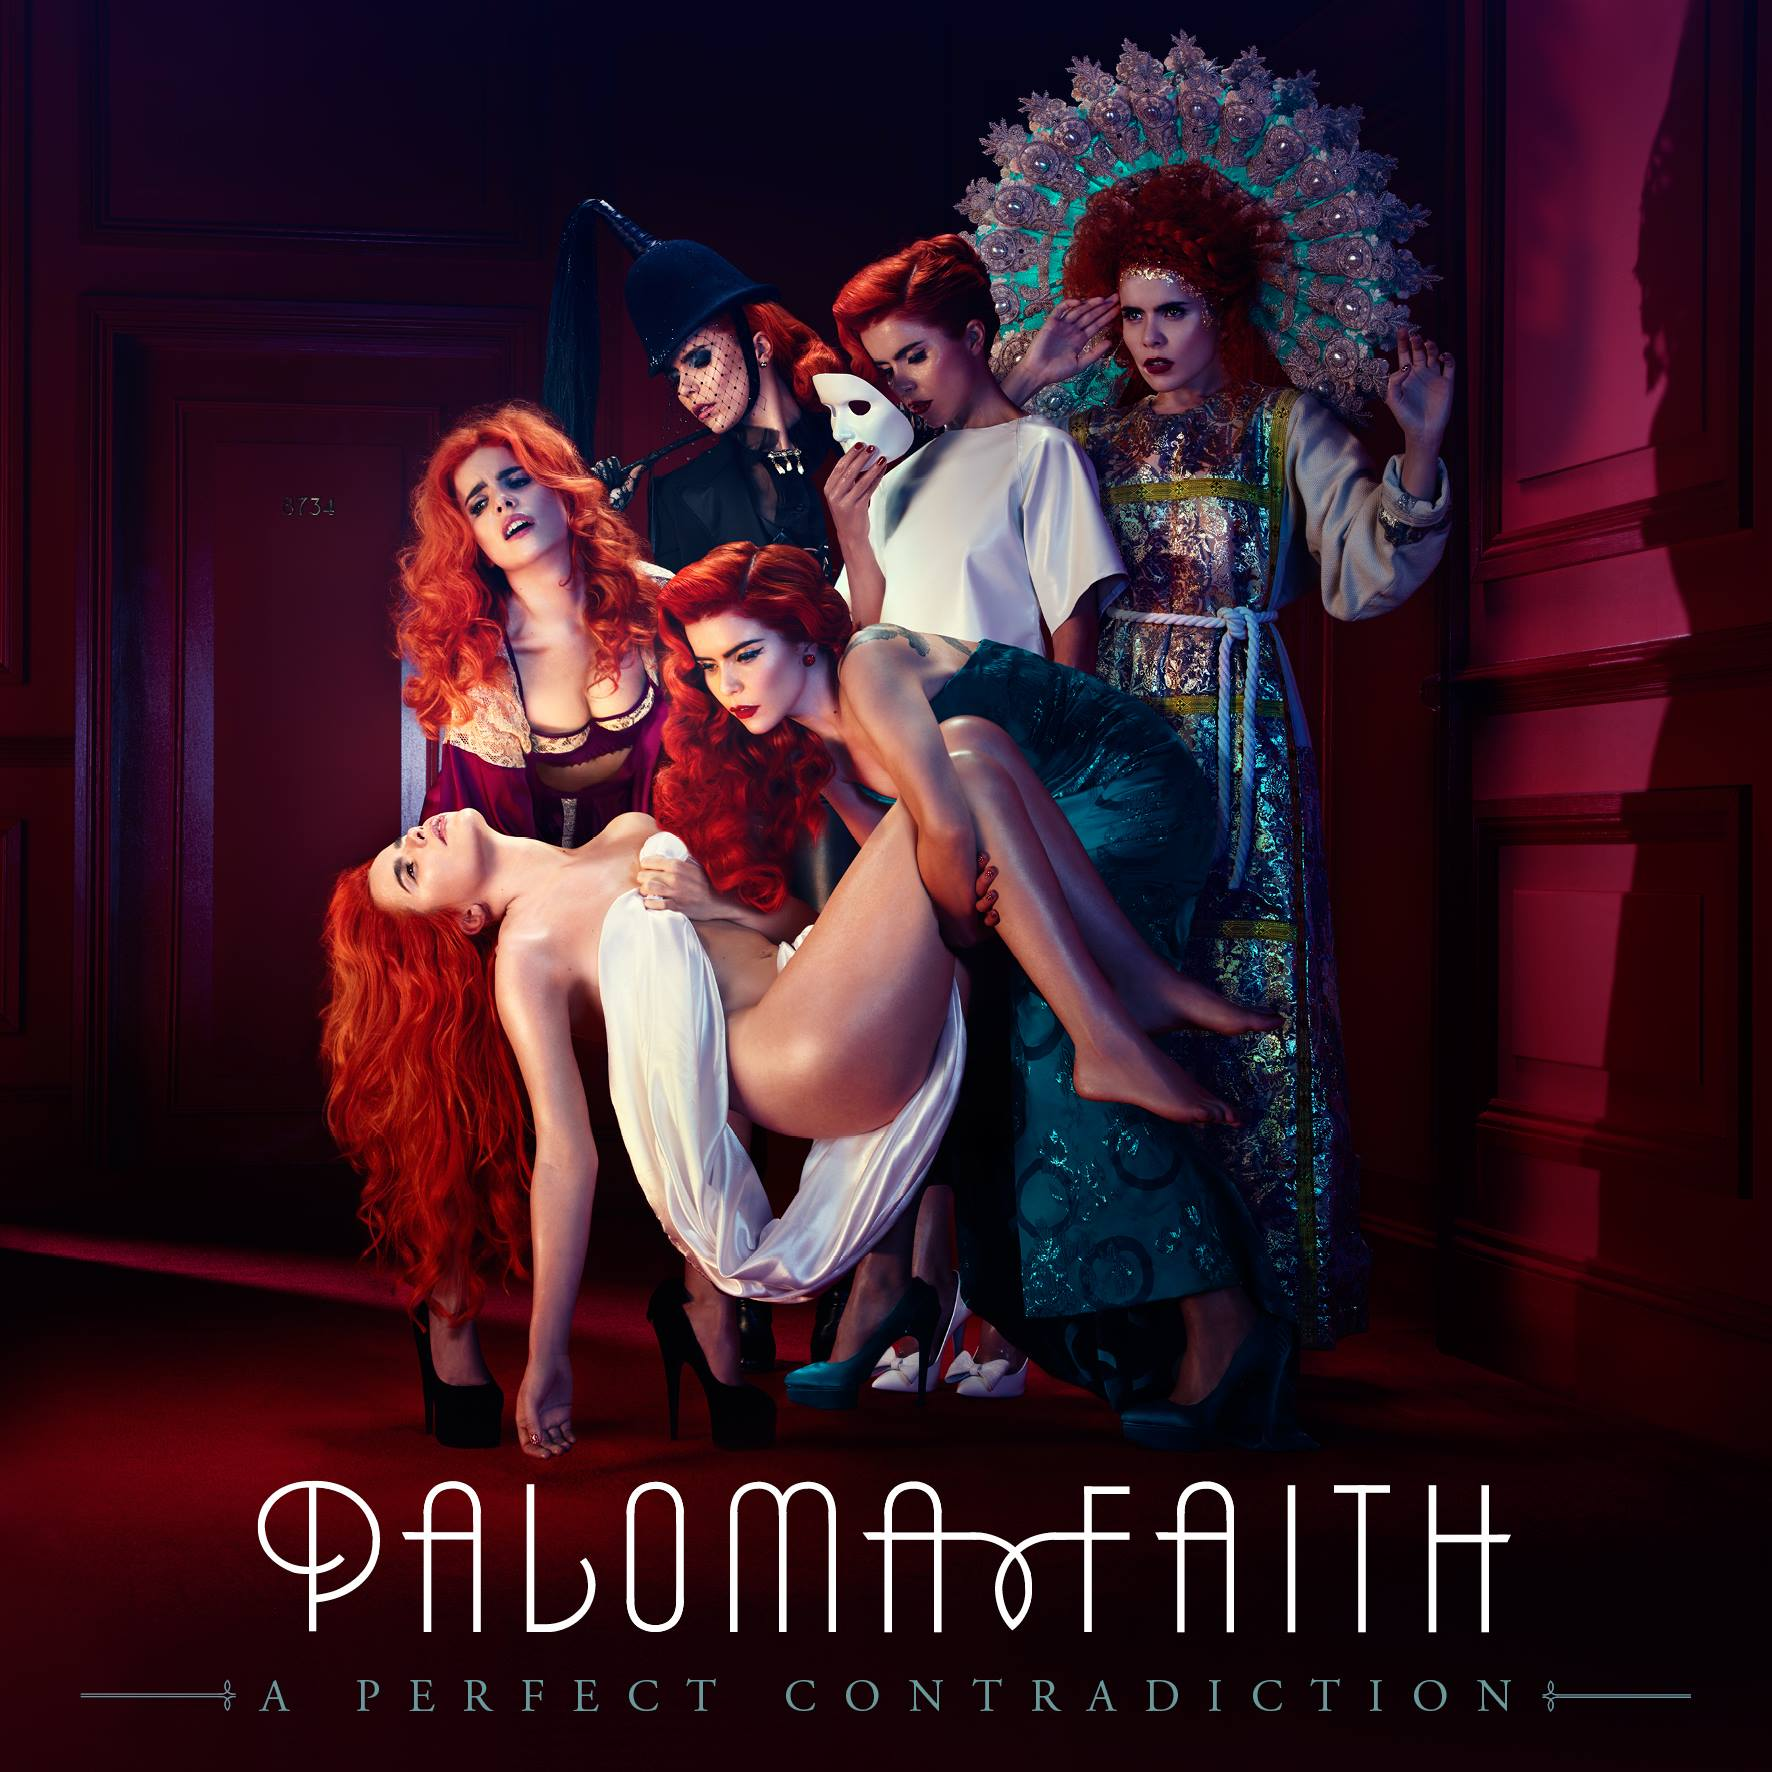 A Perfect Contradiction – Paloma Faith